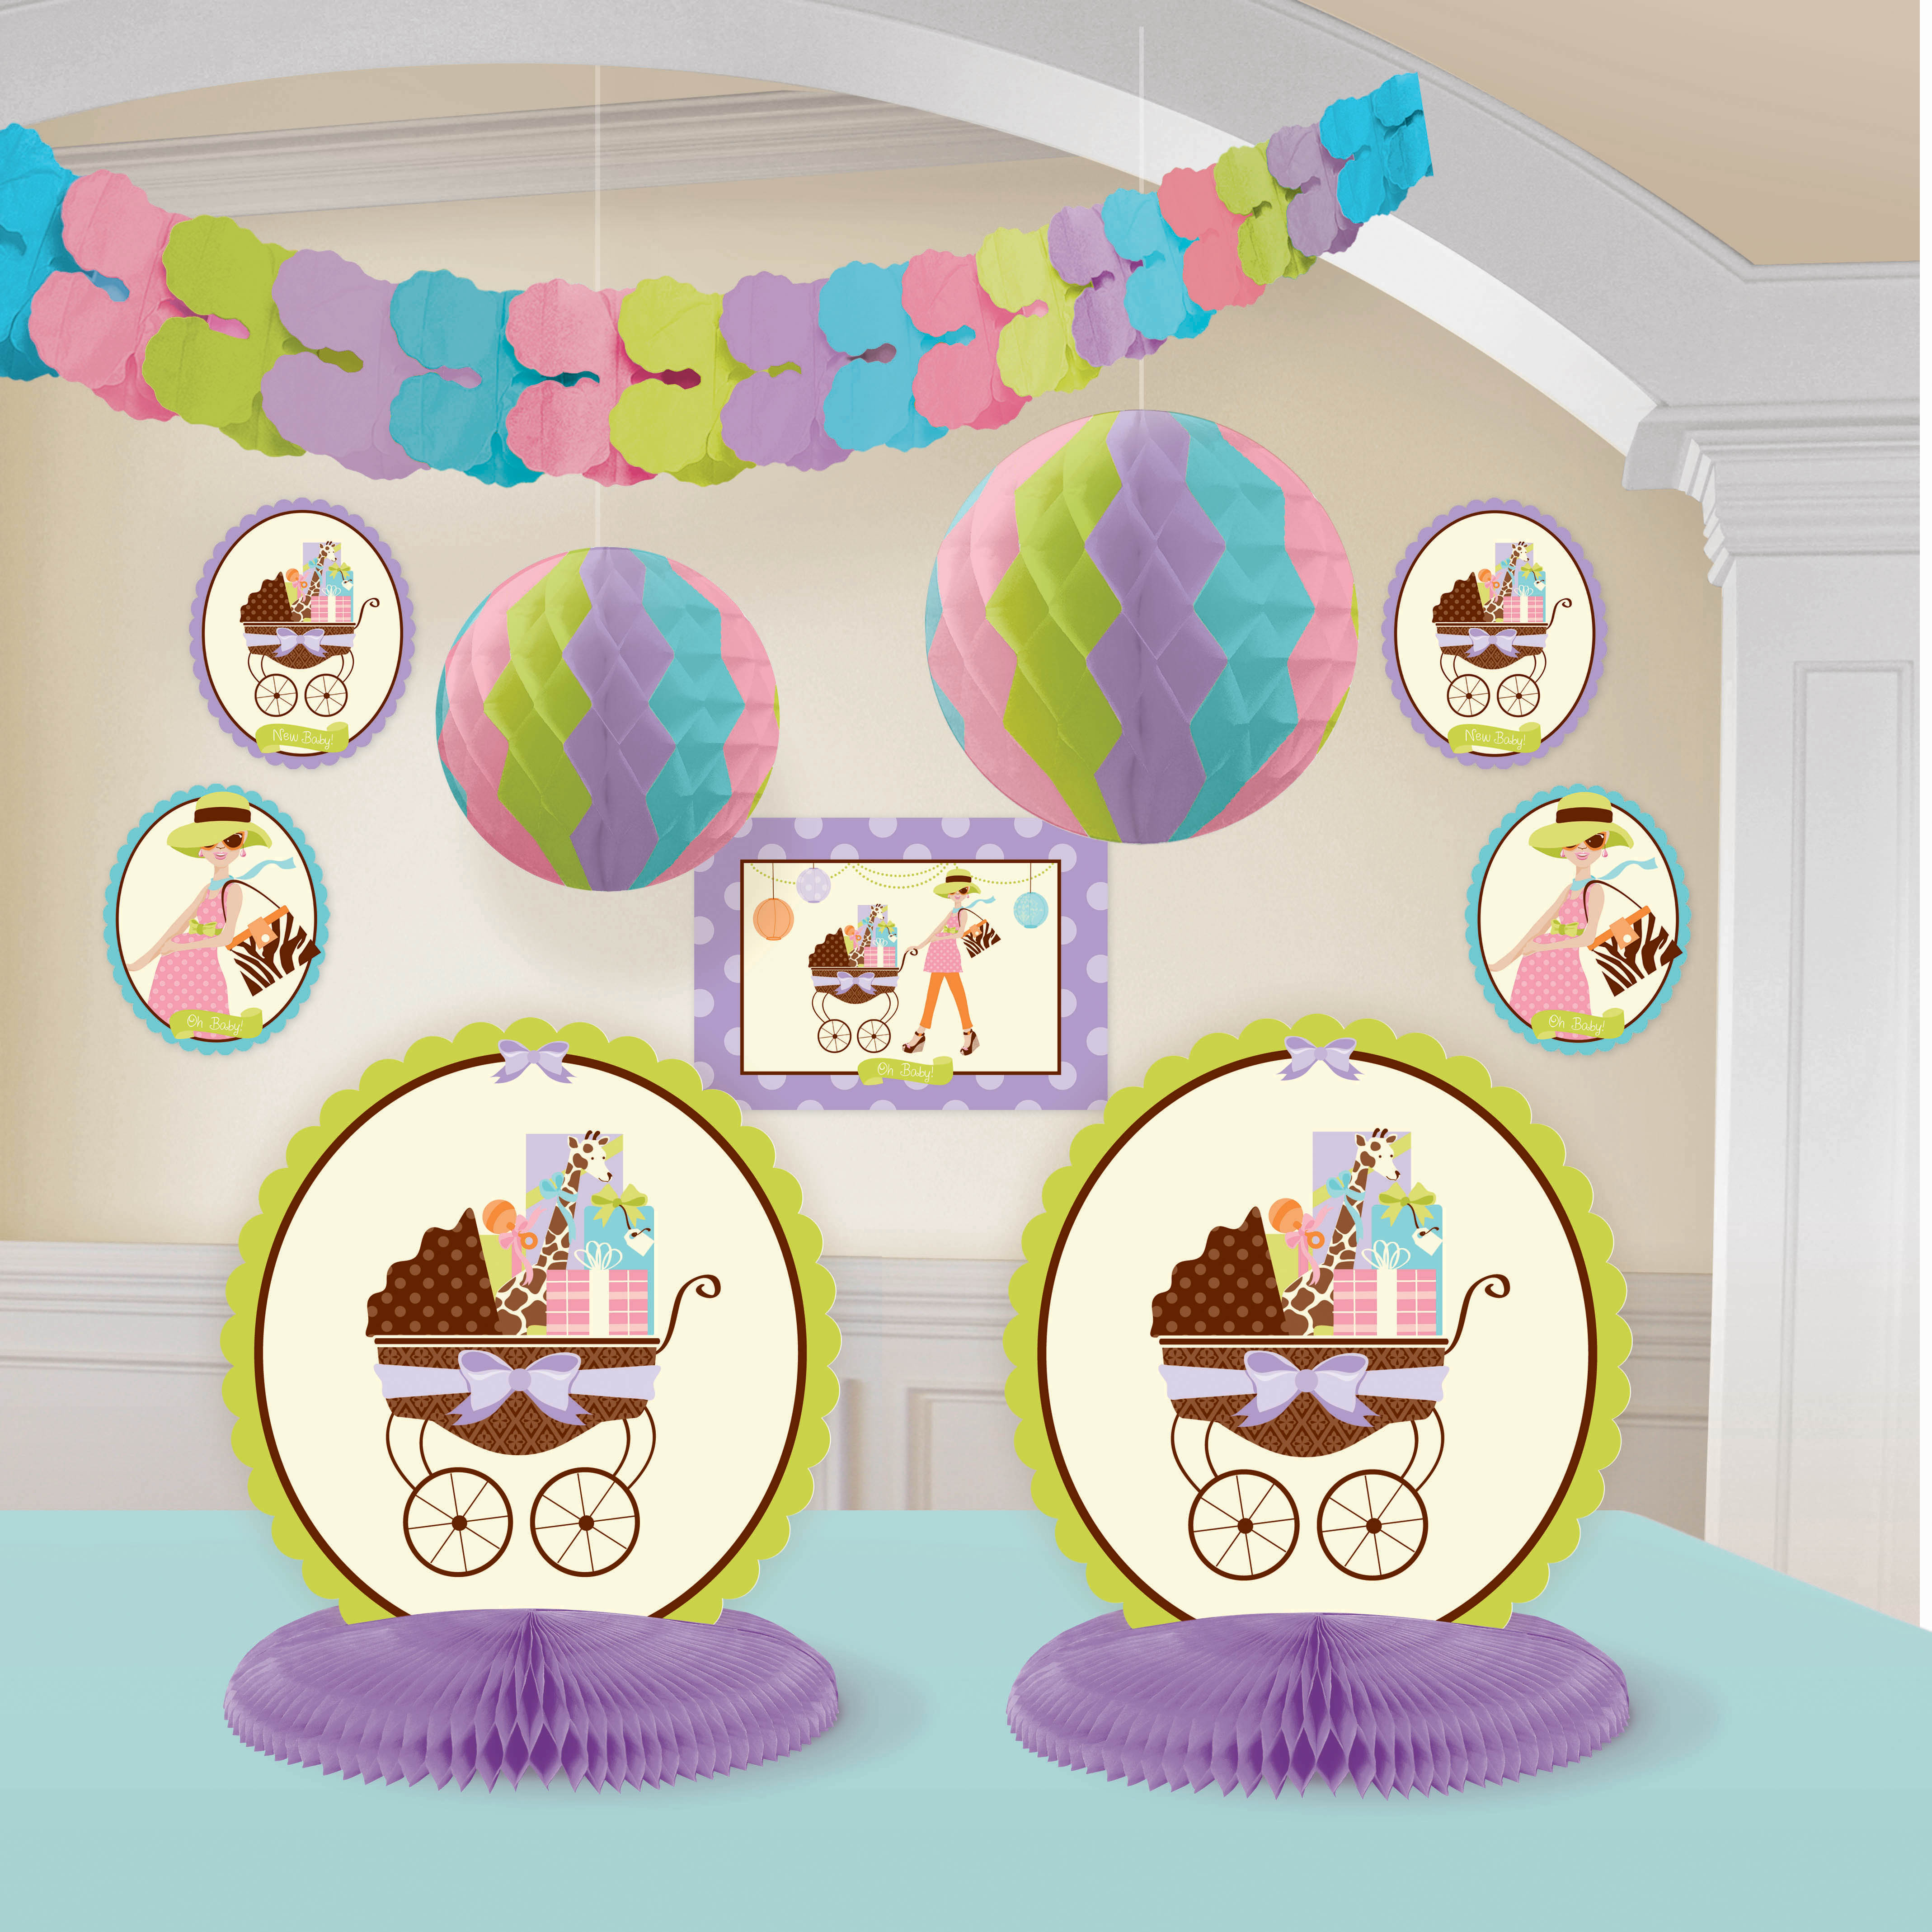 details about modern mommy room decorating kit baby shower giraffe